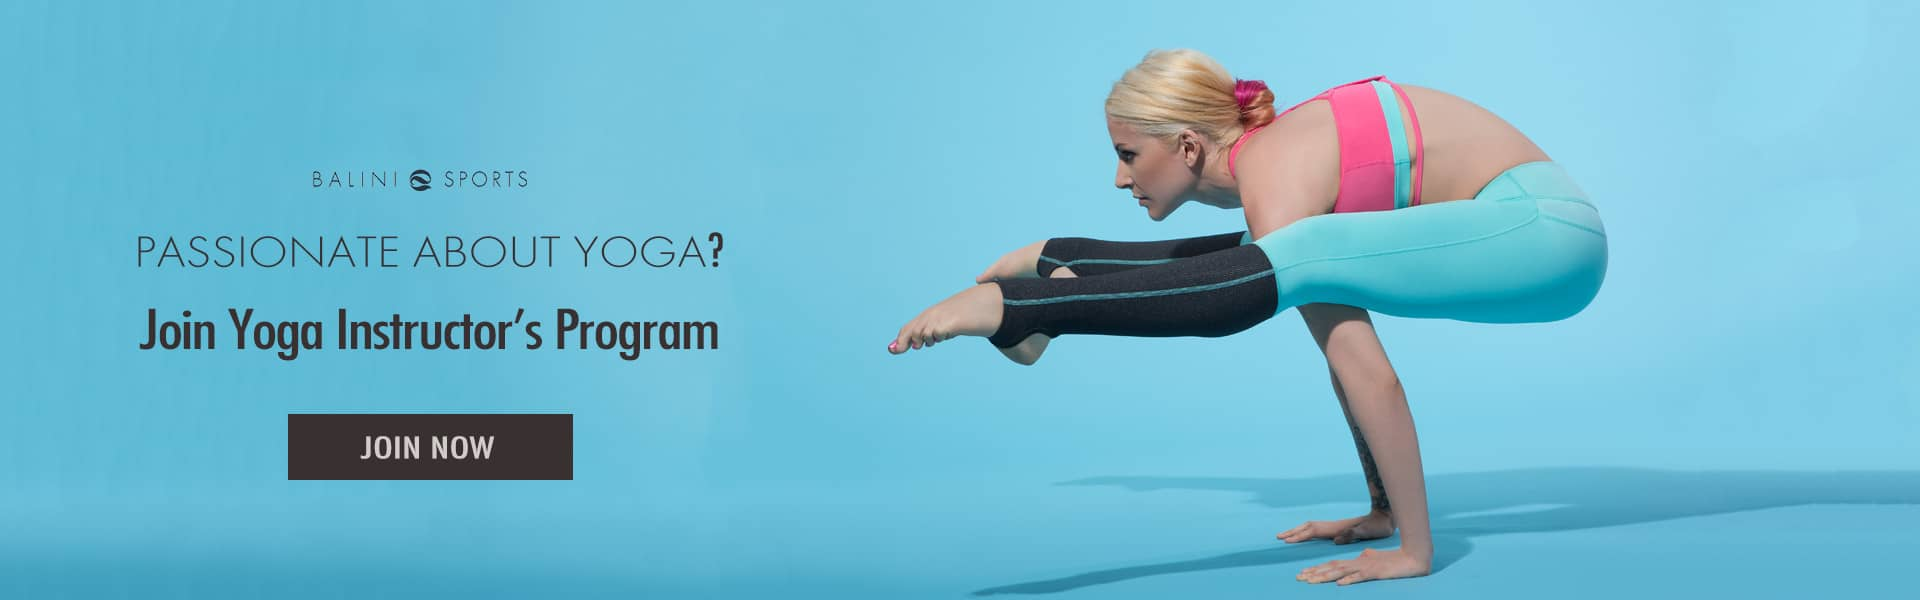 BaliniSports Yoga Instructor's Program